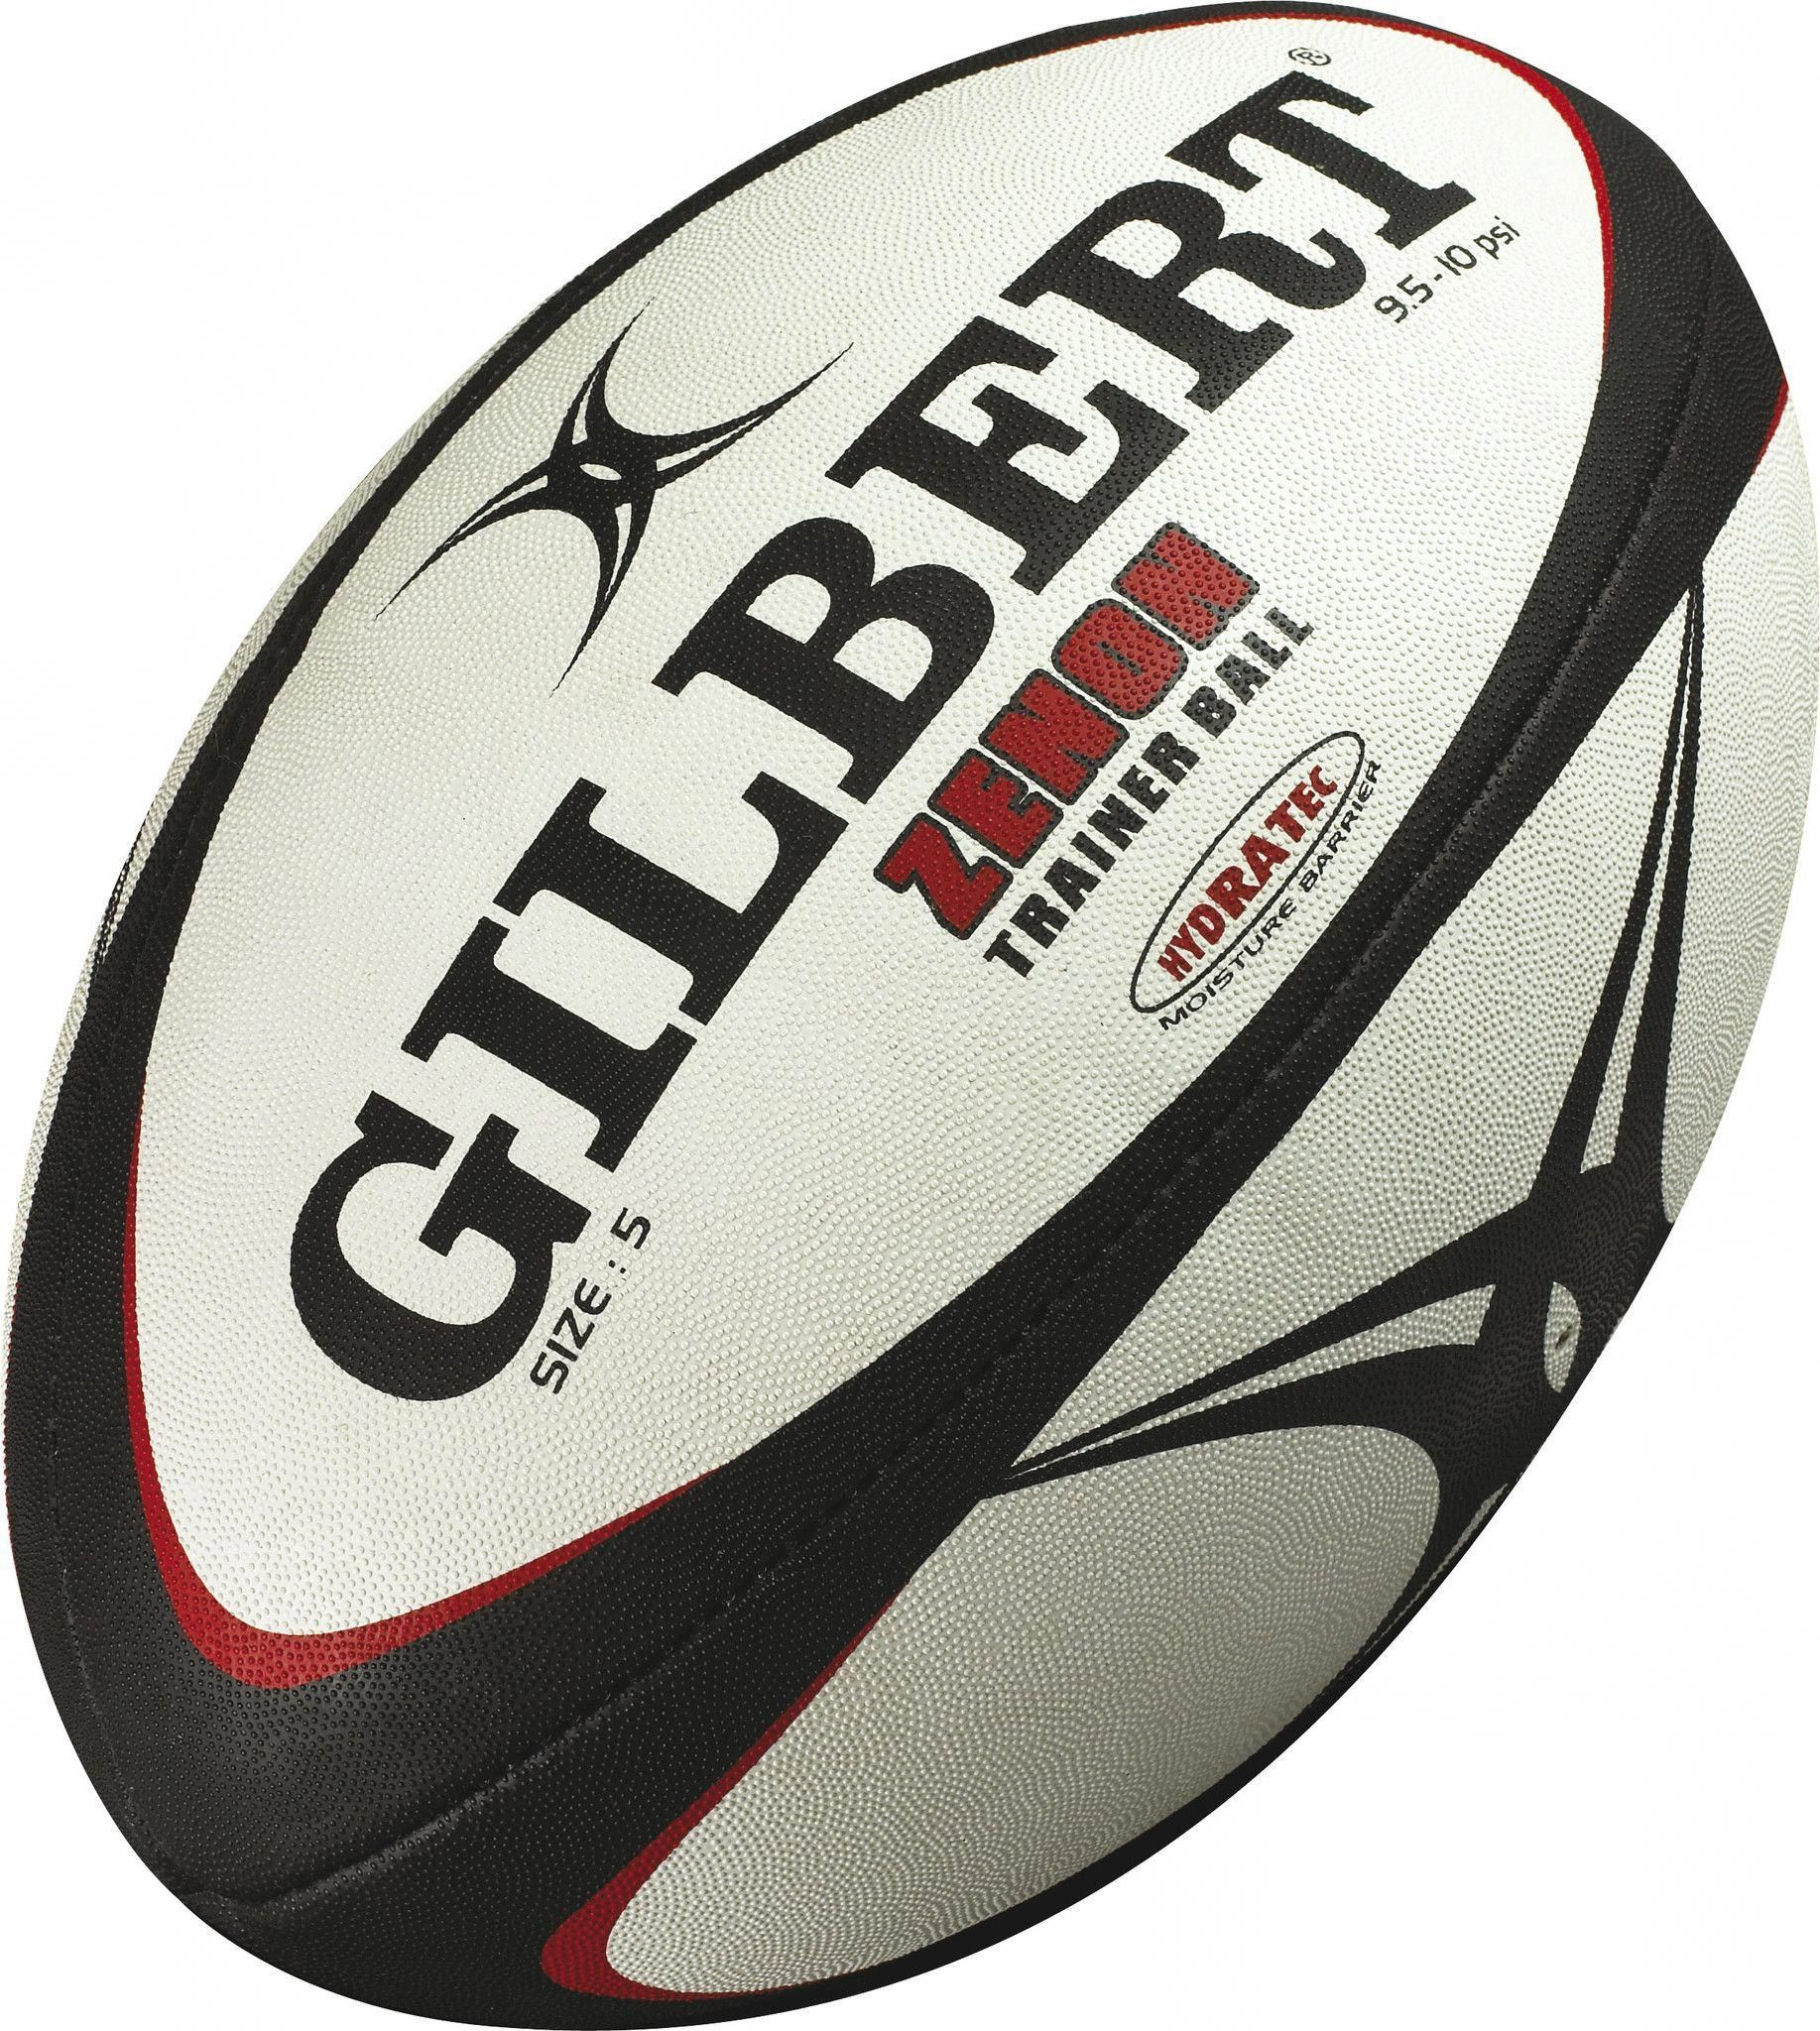 Pin By Rugby World Cup 2019 On Rugby World Cup Photos And Pictures Rugby Training Rugby Ball Ball